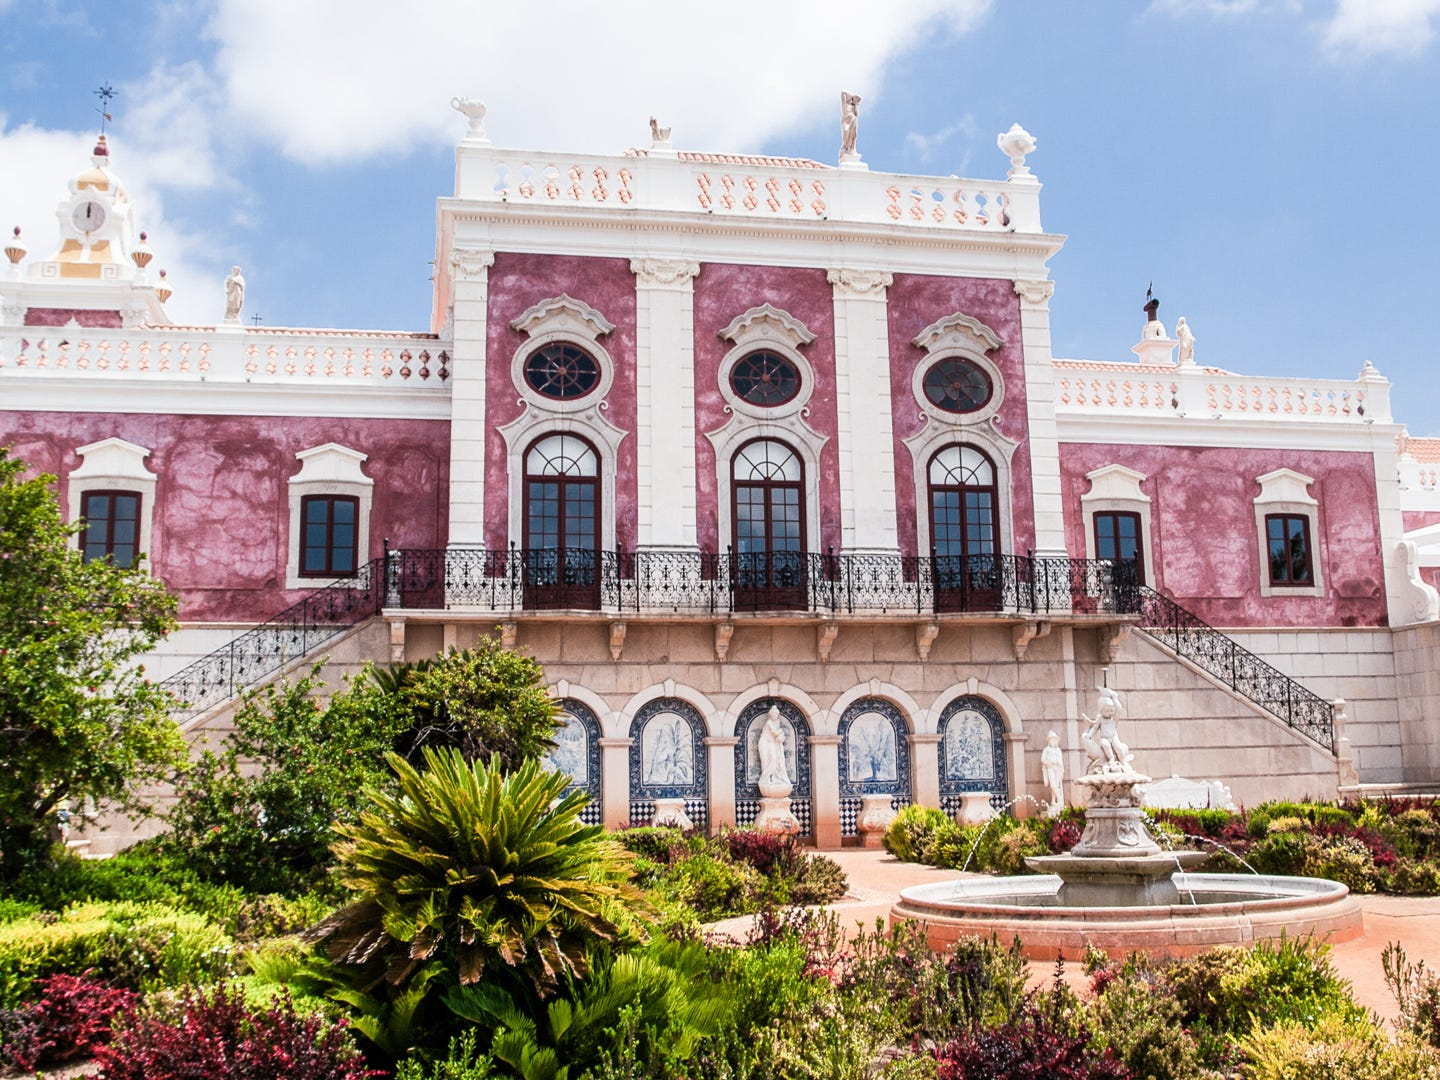 Pousada Palácio de Estoi, from $215 per night. Ever dream of living like a king? Part of the Small Luxury Hotels of the World collection, this gorgeous dusty pink chateau in Estoi, Portugal, is actually a restored 18th-century palace. There are grand gardens inspired by Versailles, Turkish baths and balconies with delightful views — all for a super-affordable nightly rate. The property has a certificate of excellence from TripAdvisor.